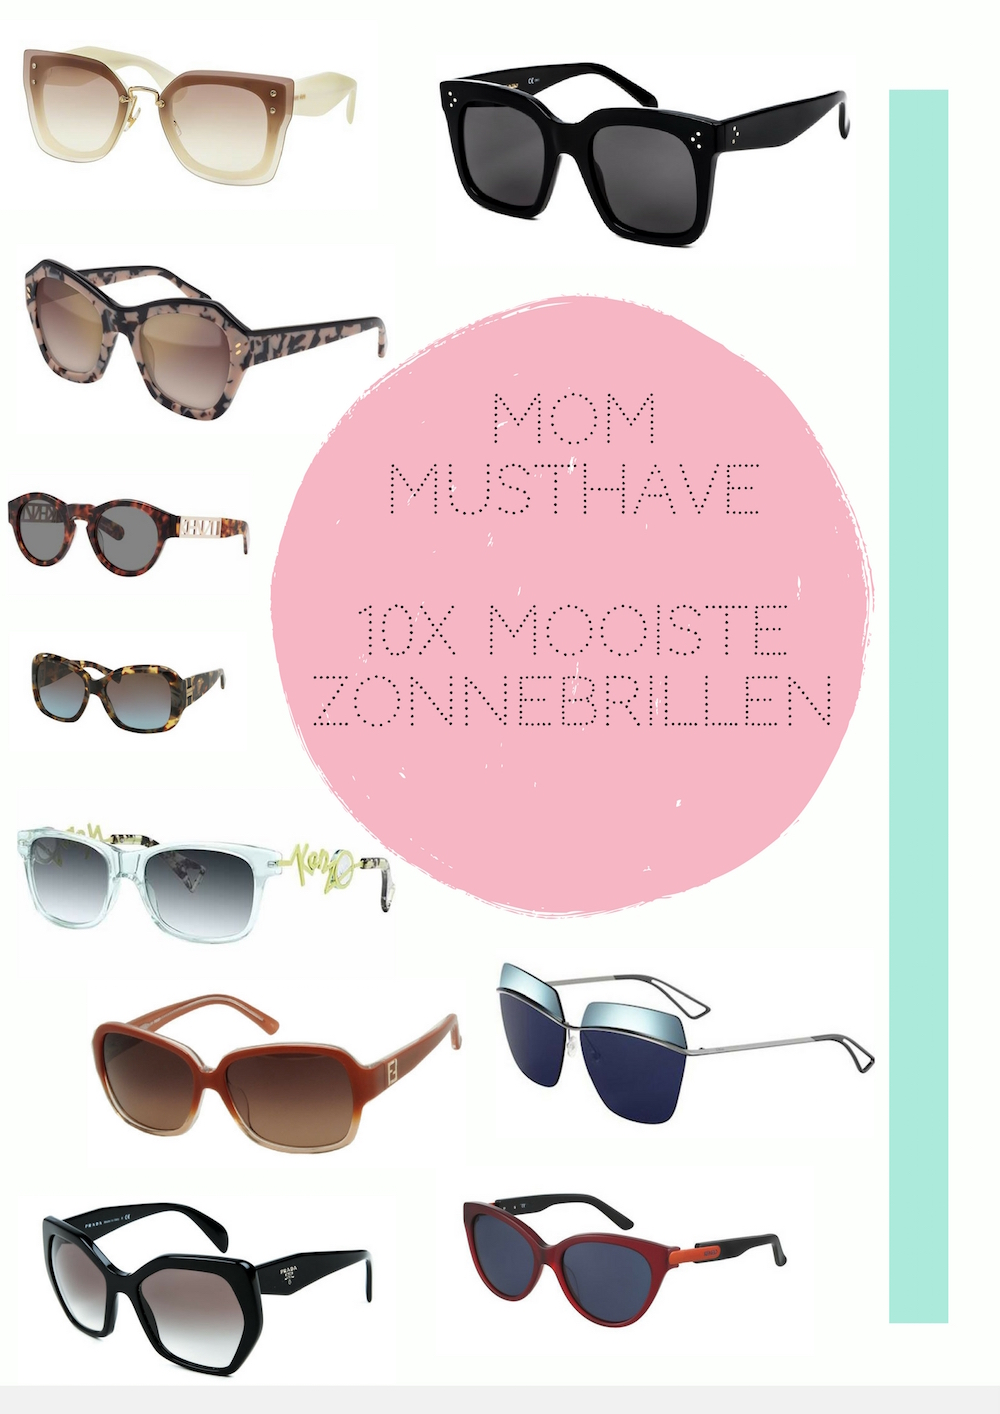 MOM MUSTHAVE ZONNEBRILLEN